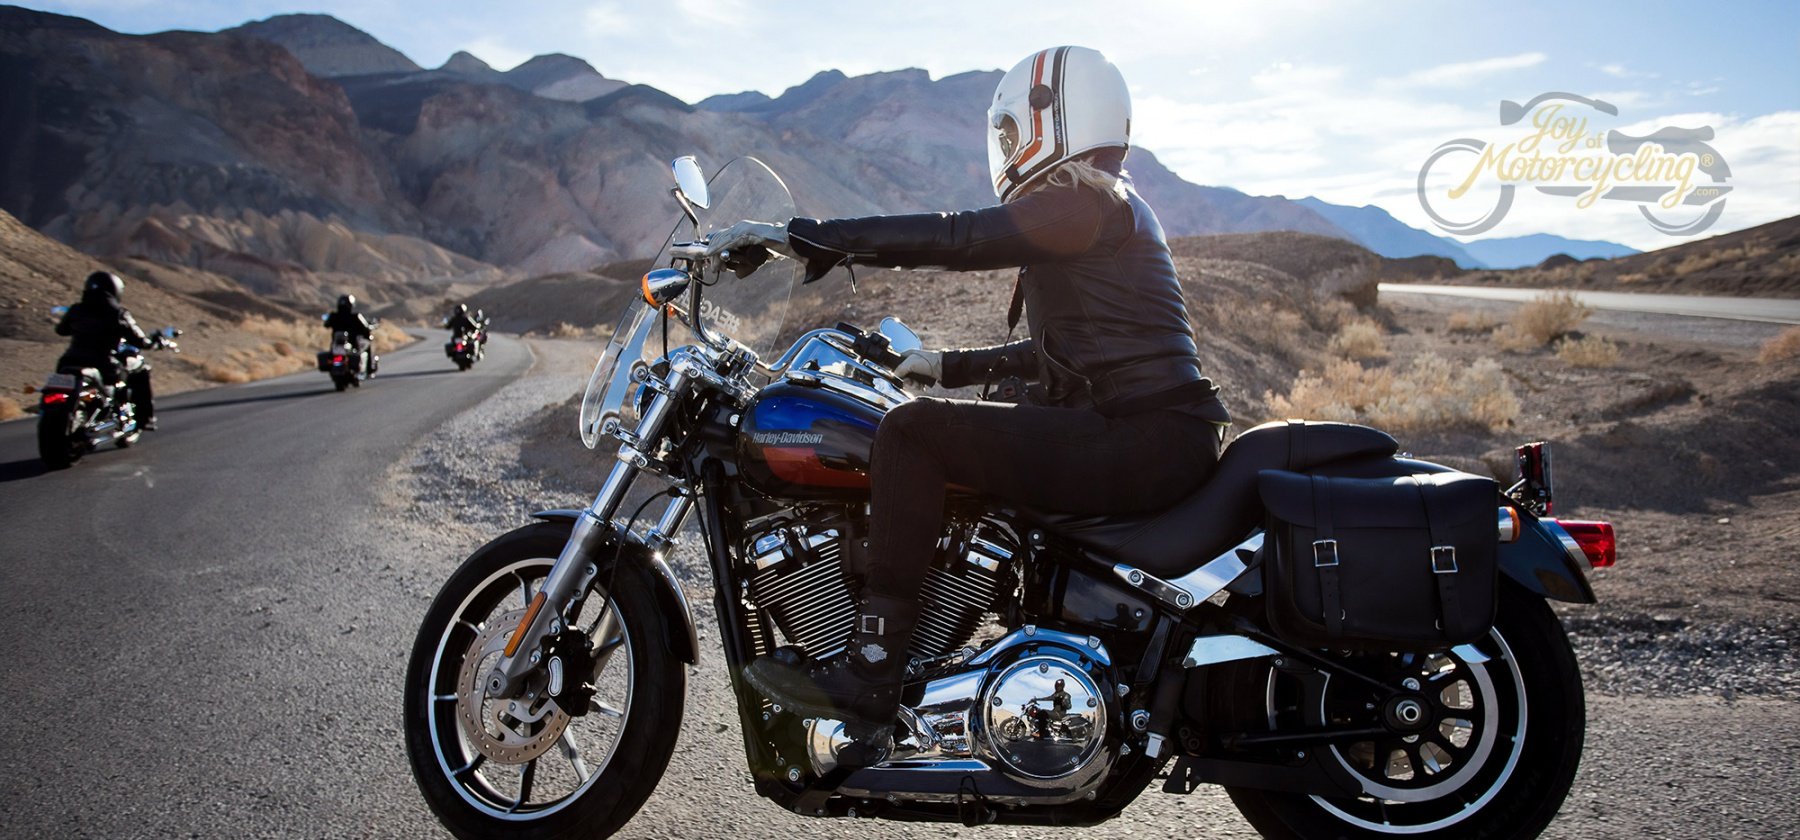 USA - Photo by Harley-Davidson via Unsplash